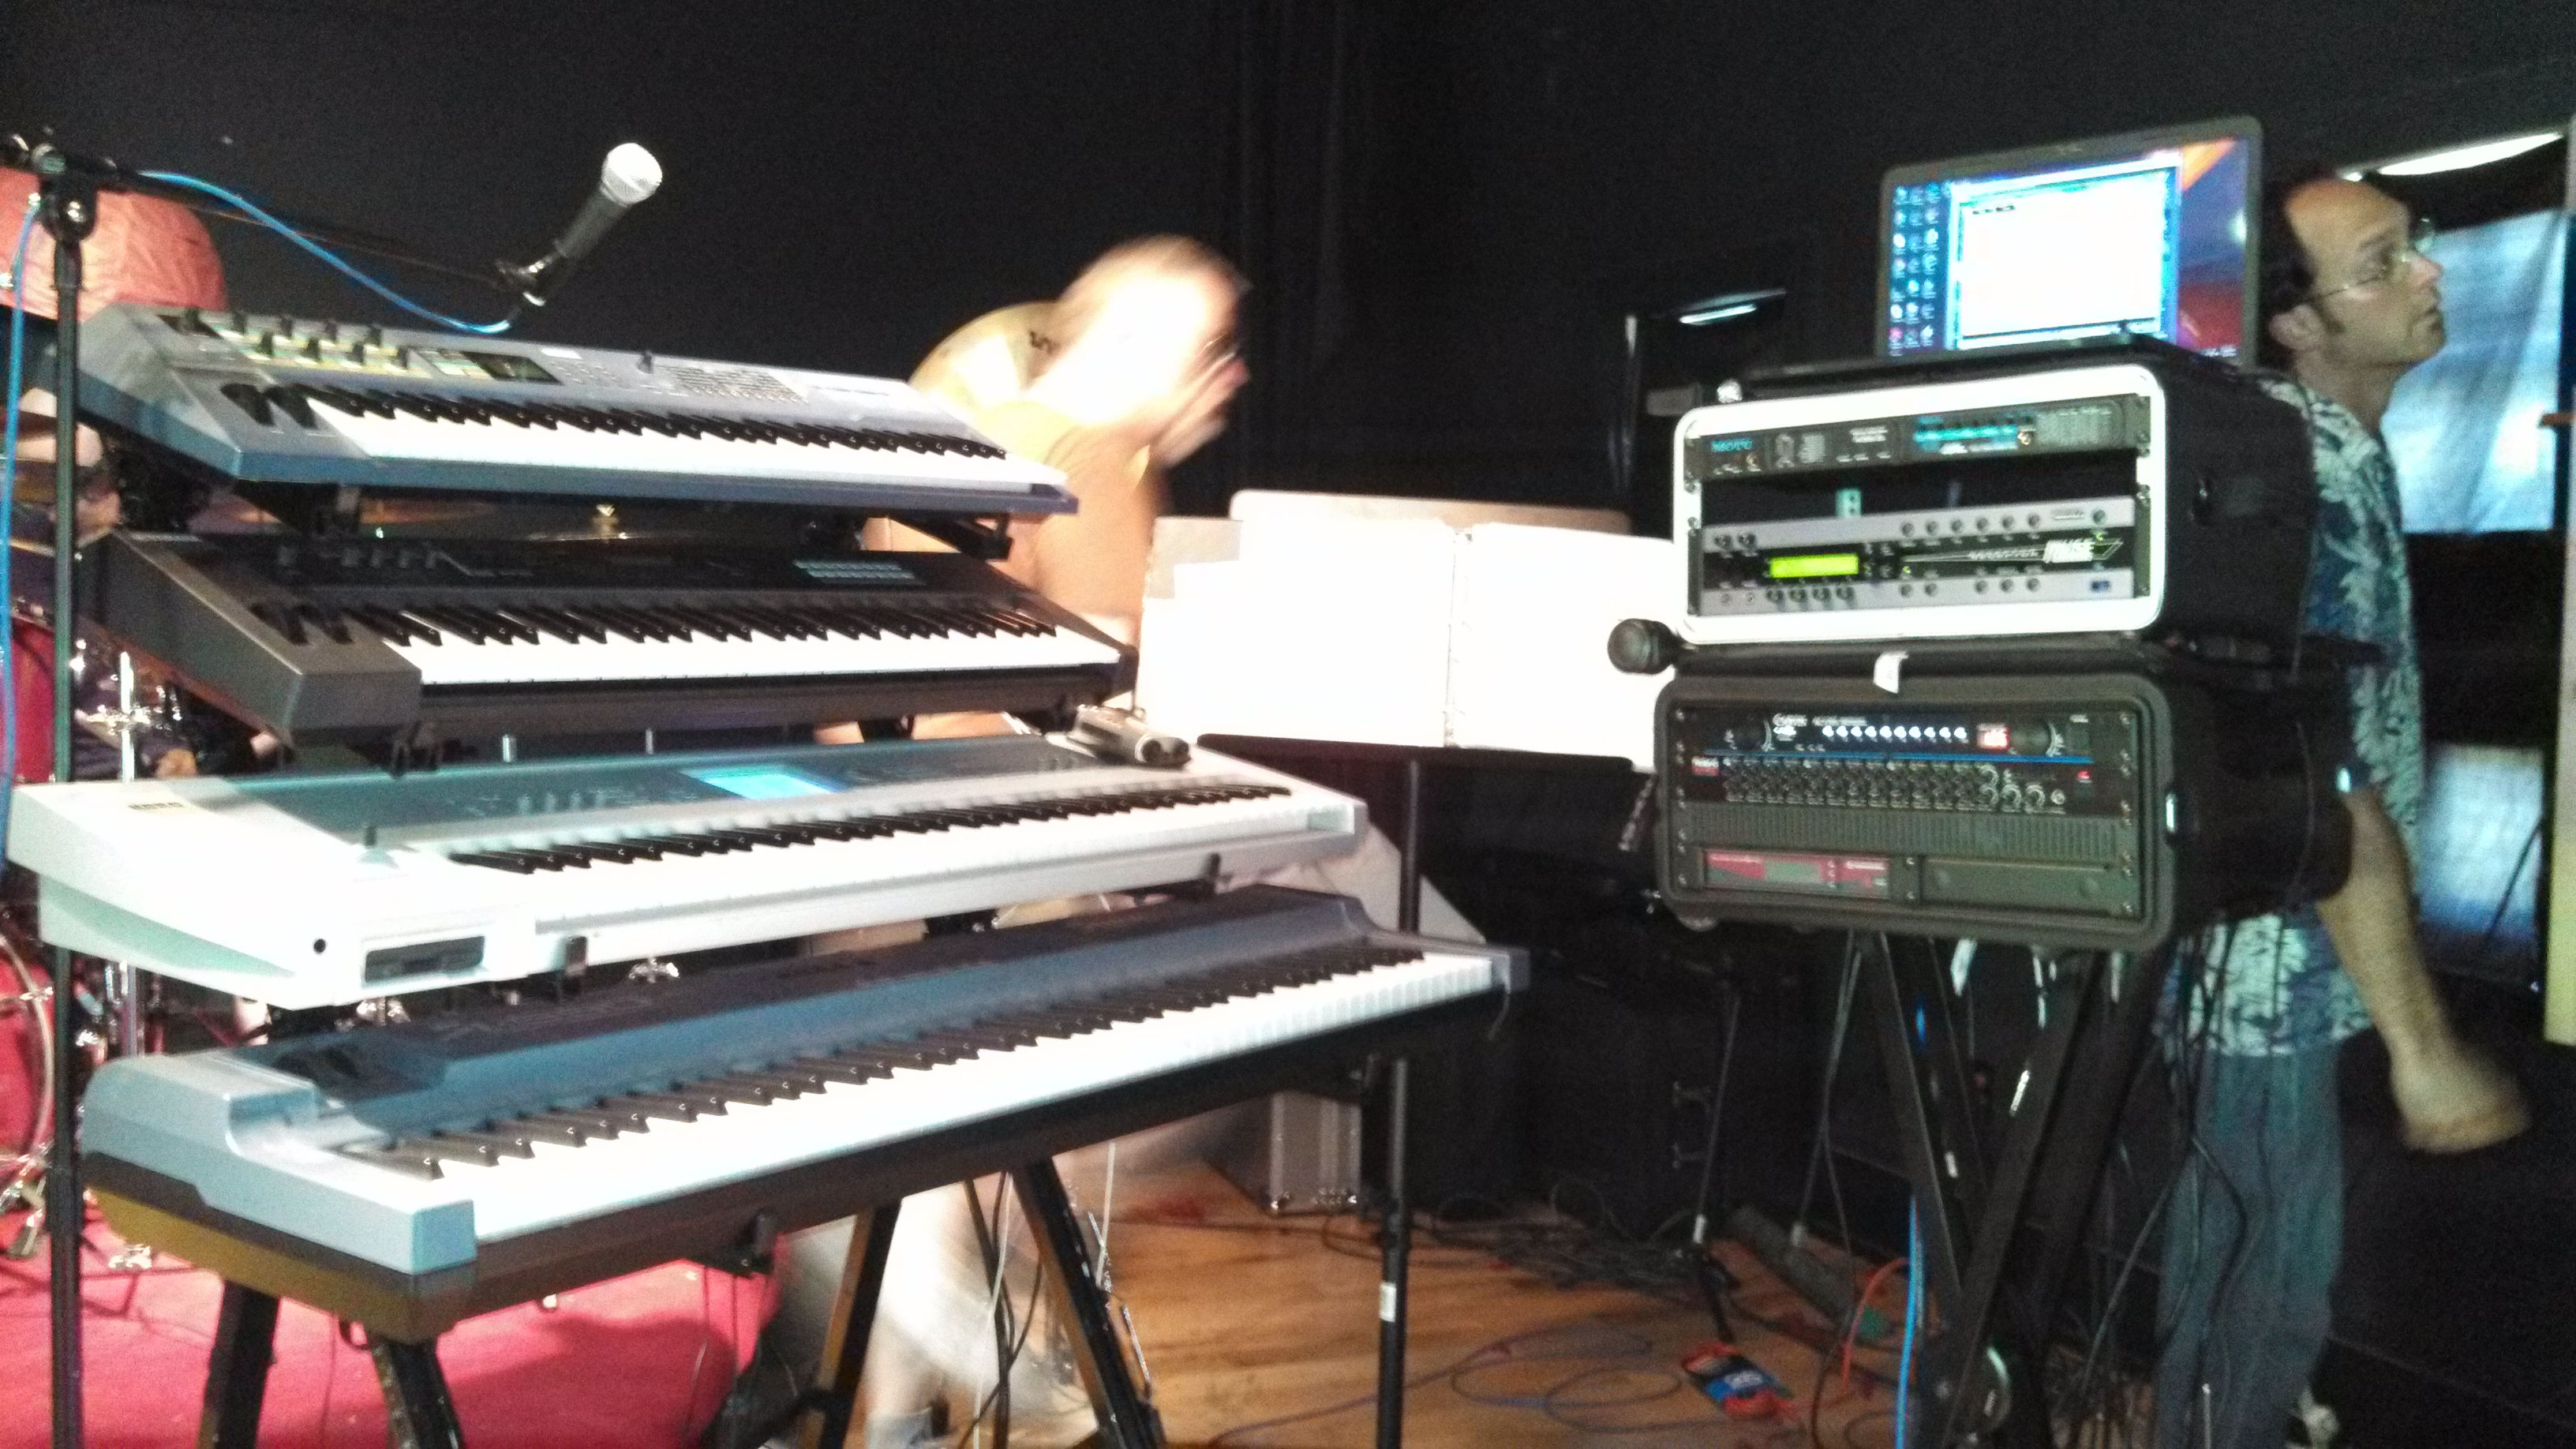 Bill runs behind Andrew's keyboard rig, while engineer Paul Ilsley tries to figure out the backstage monitor setup.